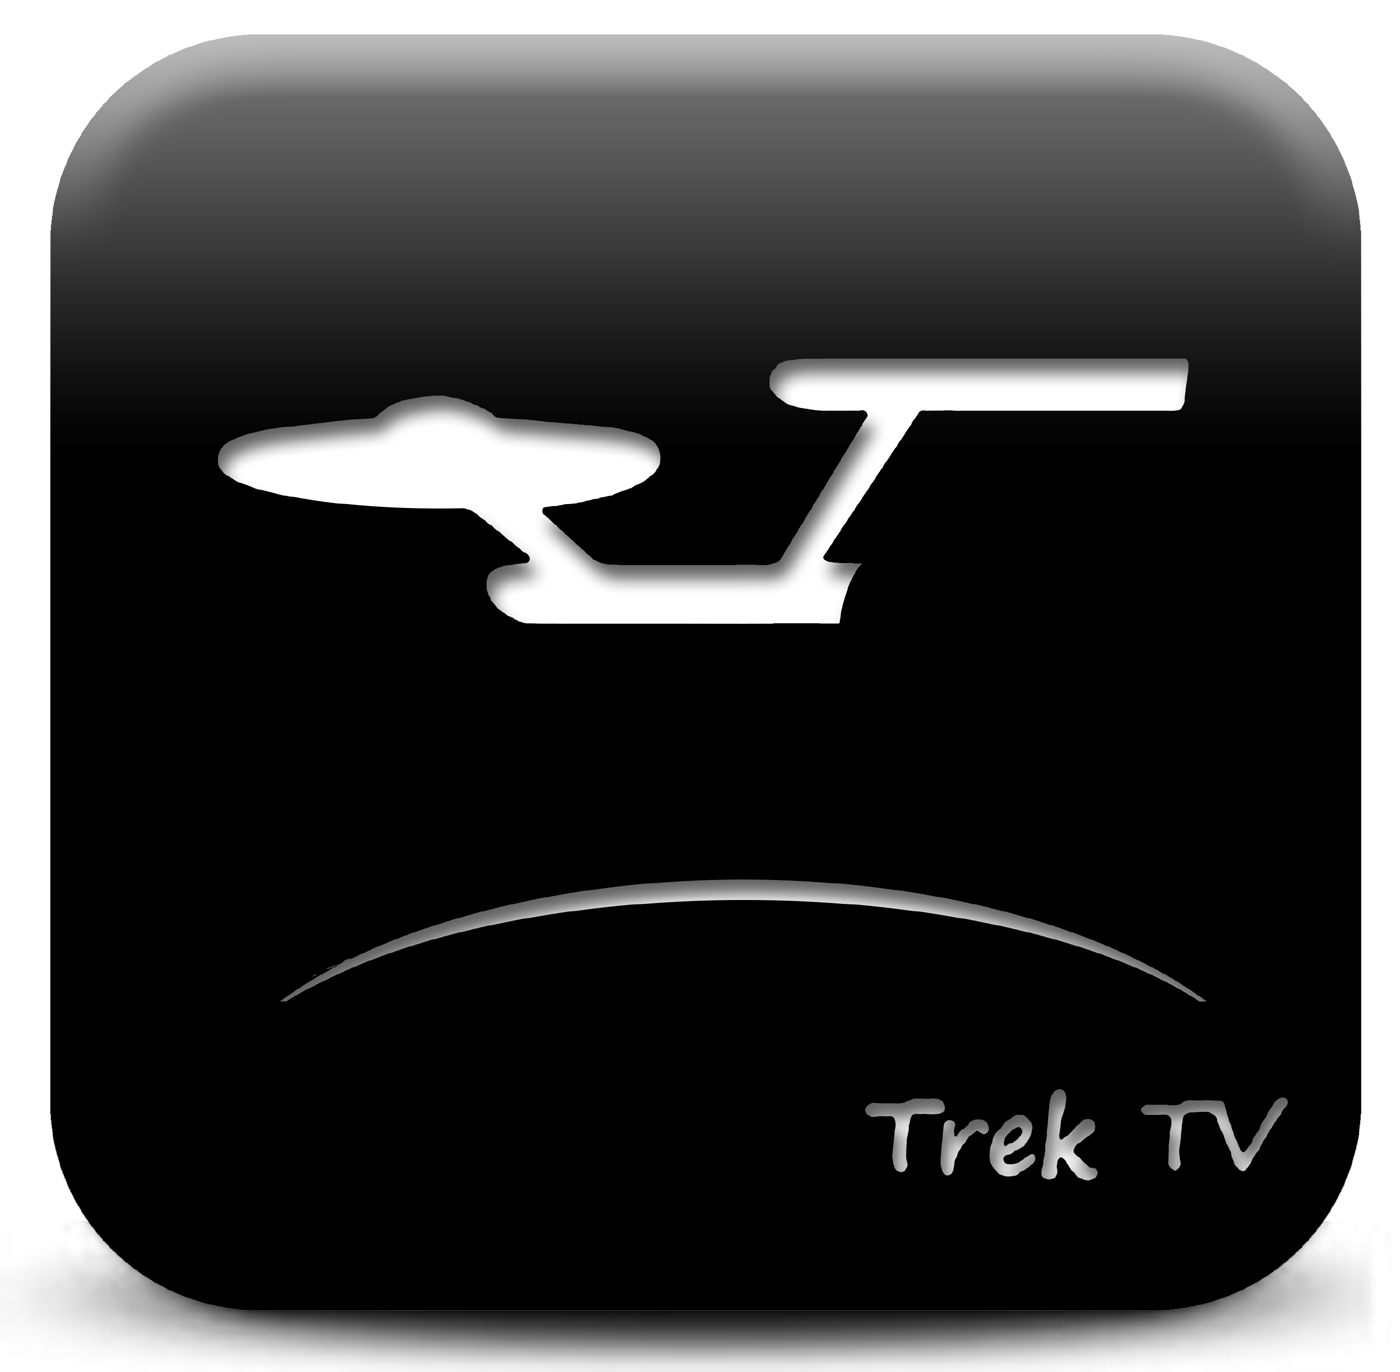 Trek TV - The most ambitious Star Trek podcast on the internet!